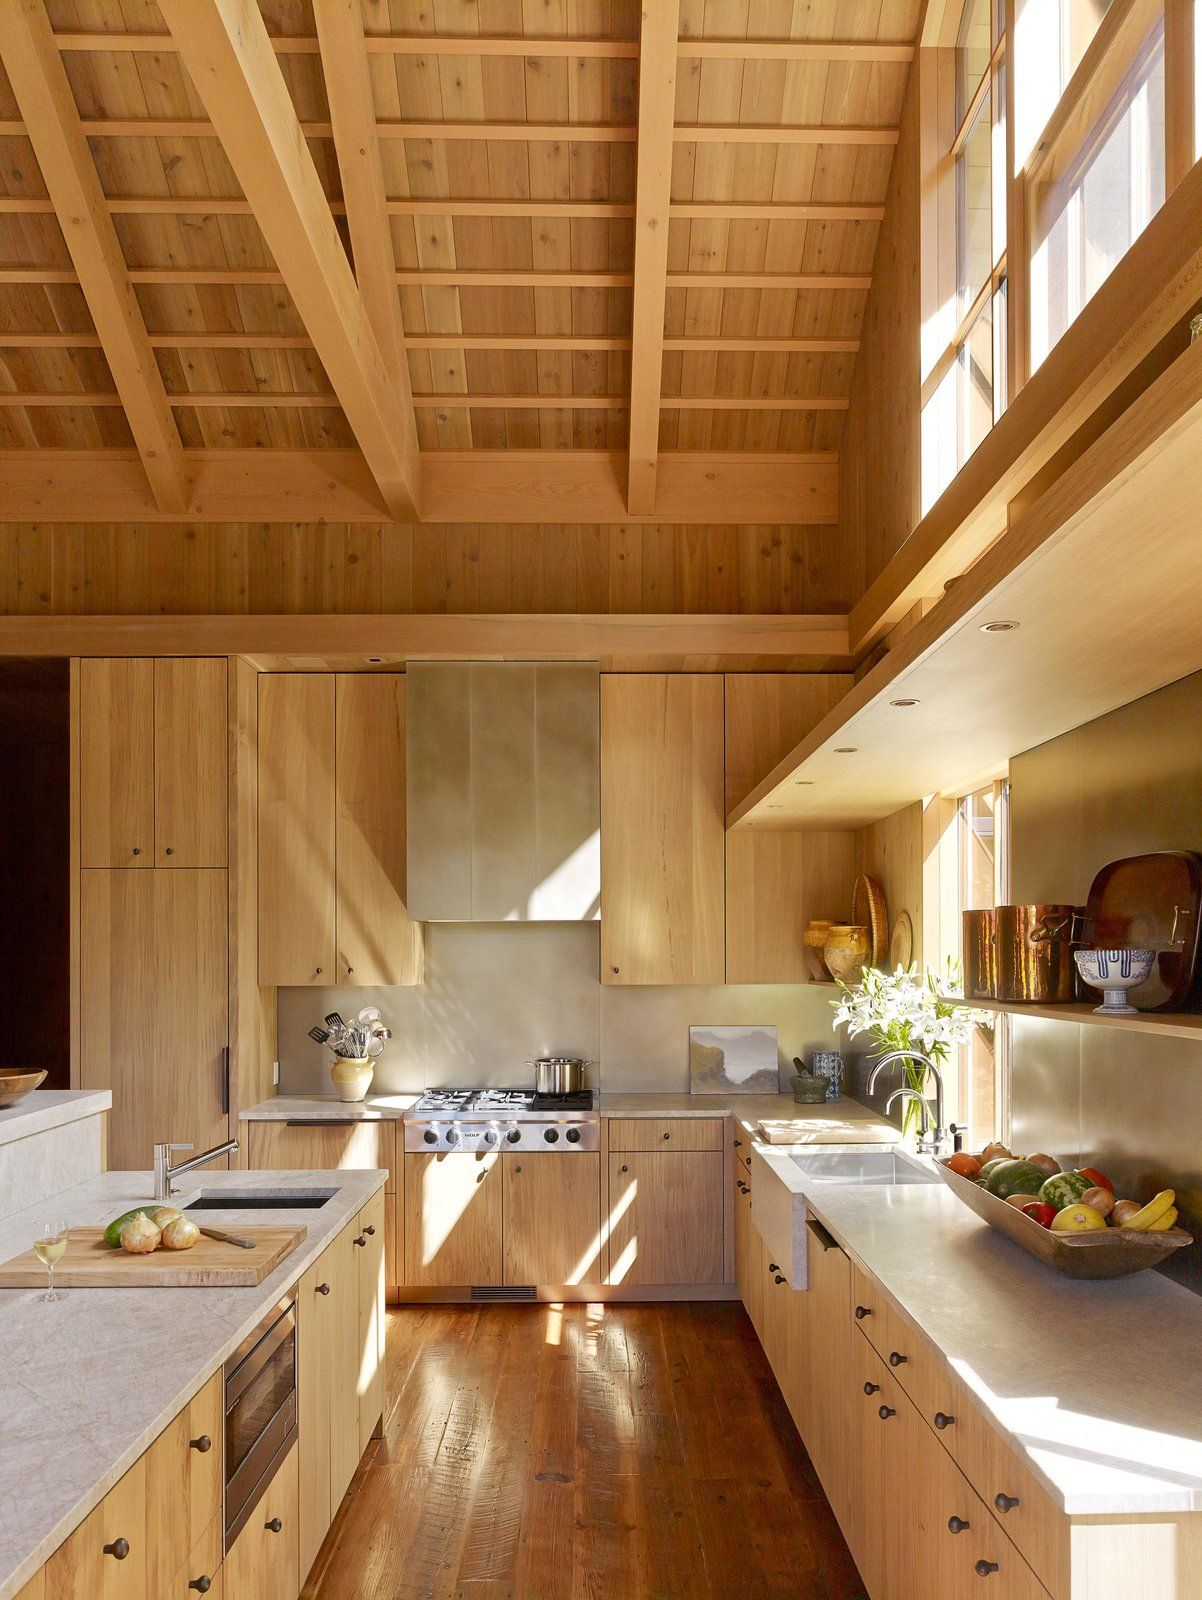 The kitchen maintains the rustic, natural feeling.